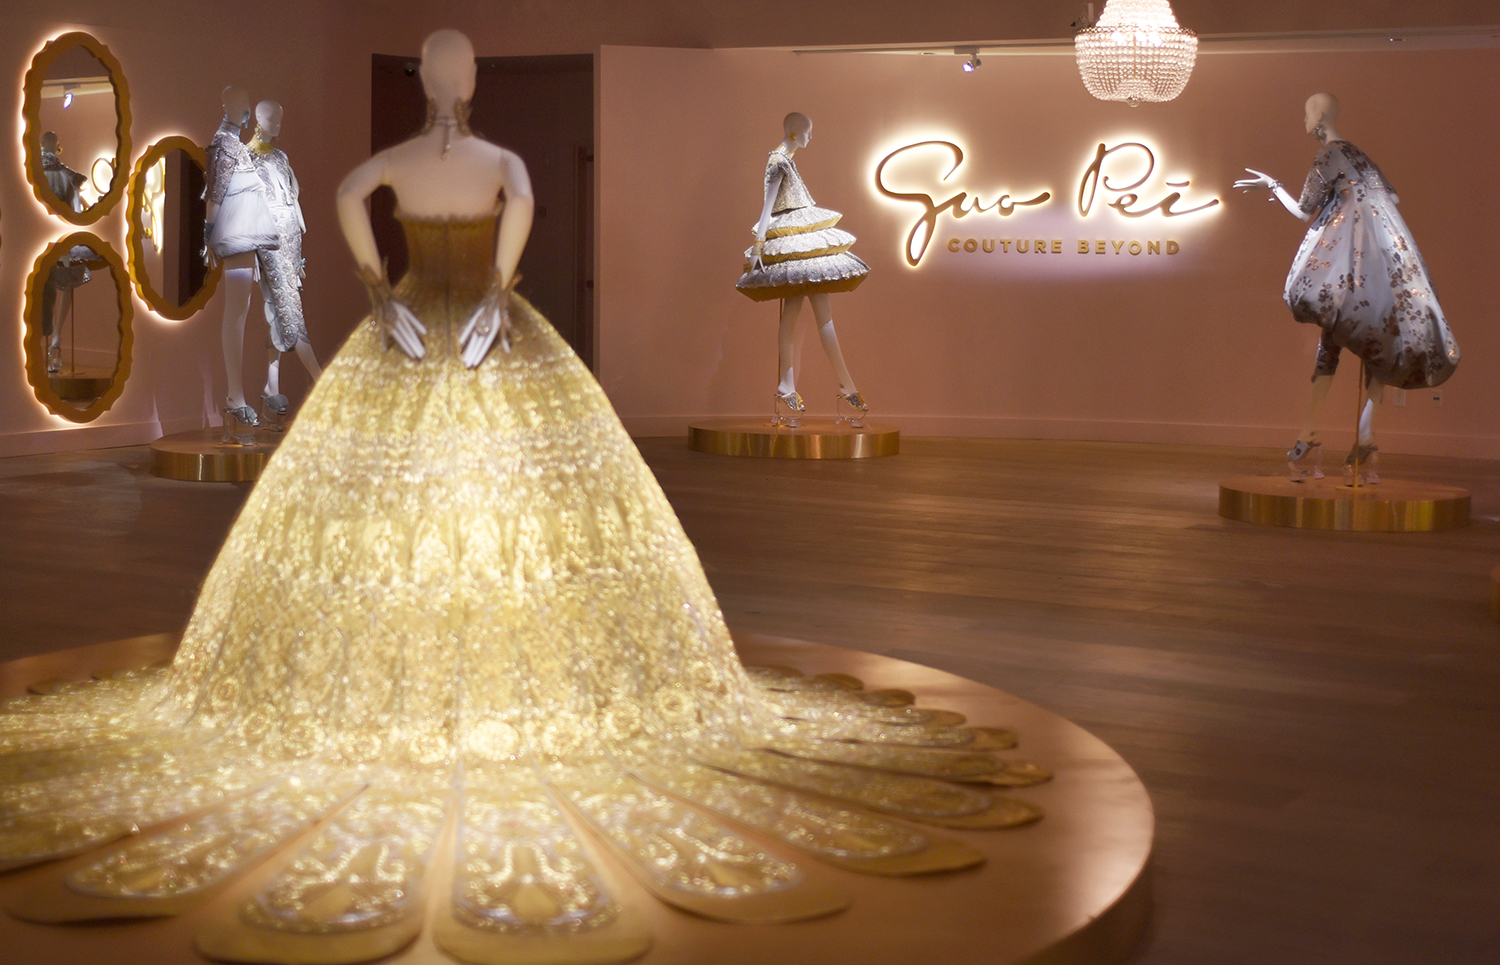 stylecurated guo pei couture beyond scad fash